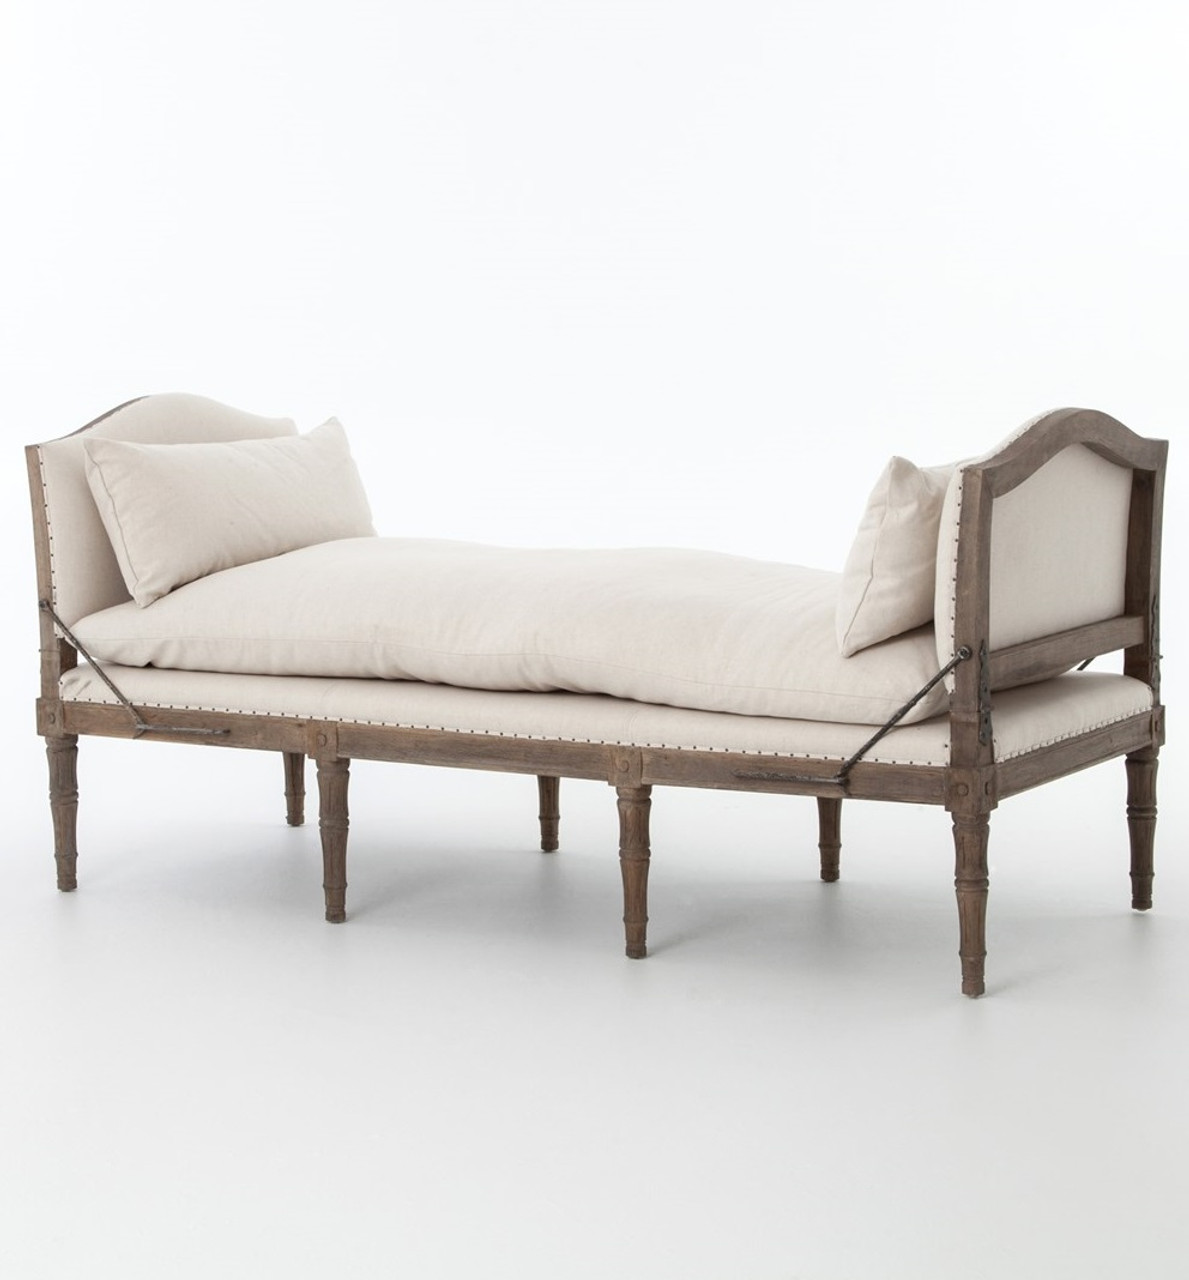 Pleasing Allison French Oak Upholstered Chaise Bed End Bench Machost Co Dining Chair Design Ideas Machostcouk